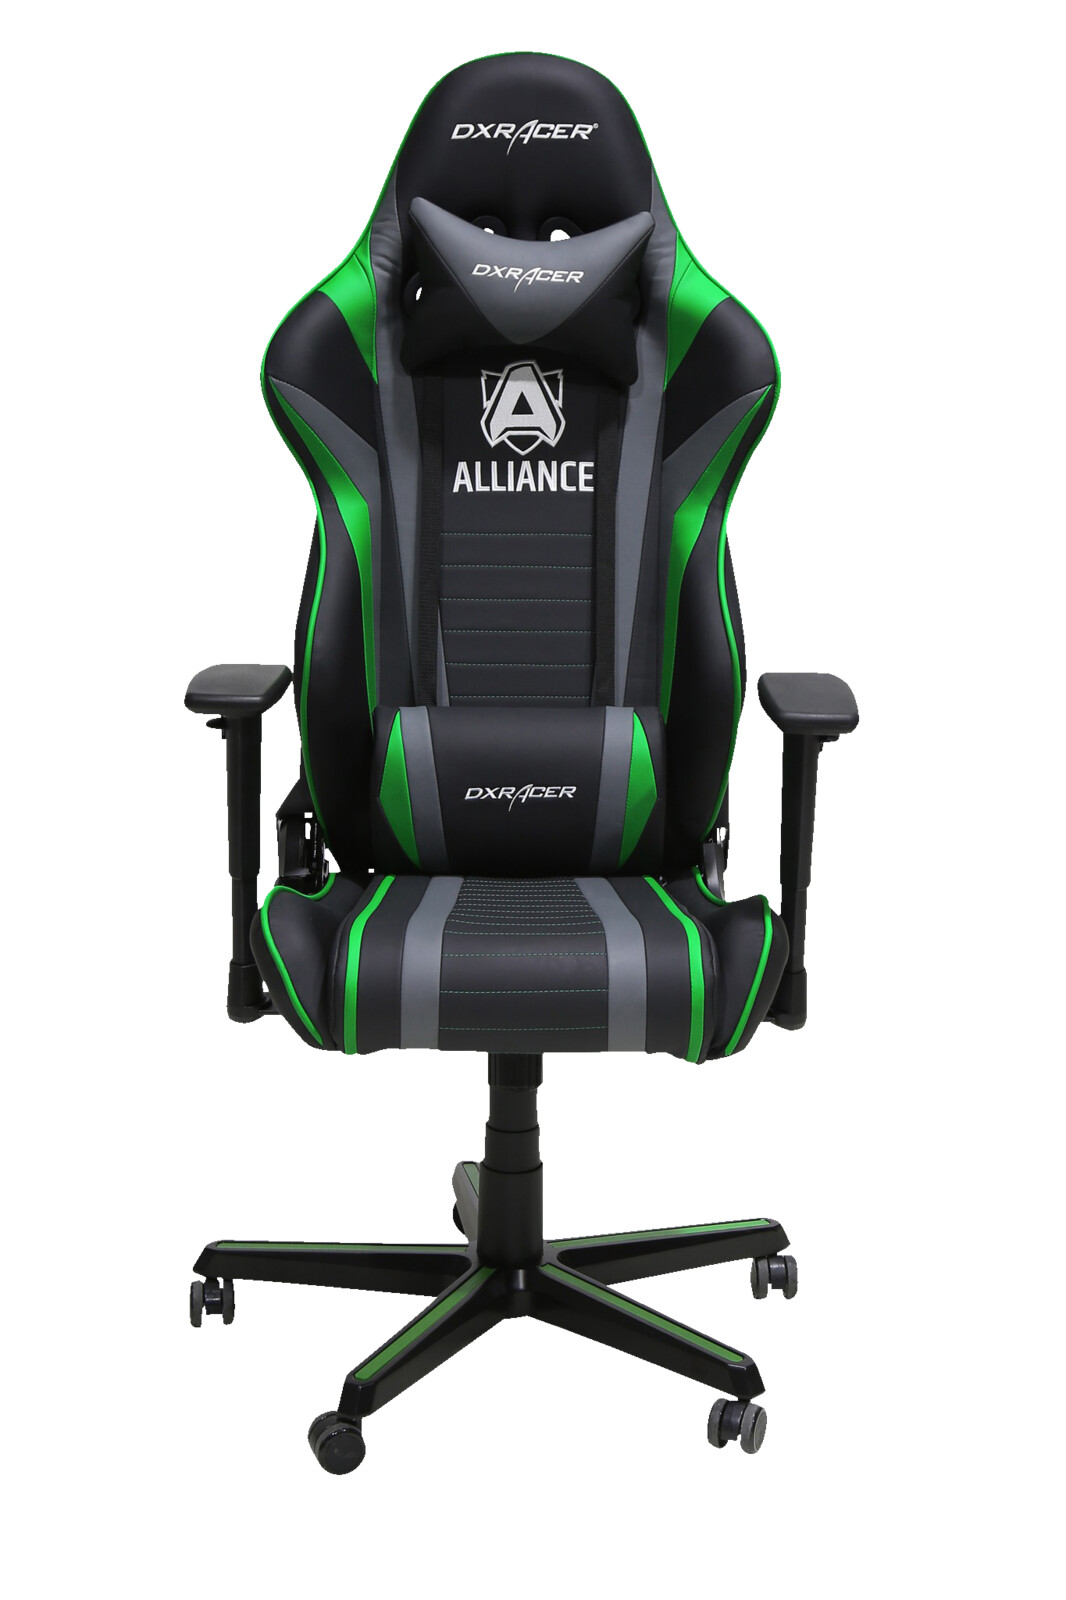 Dxracer Sessel Details Zu Dxracer Racing R59 Gaming Chair Alliance Edition Gaming Stuhl Schwarz Grün